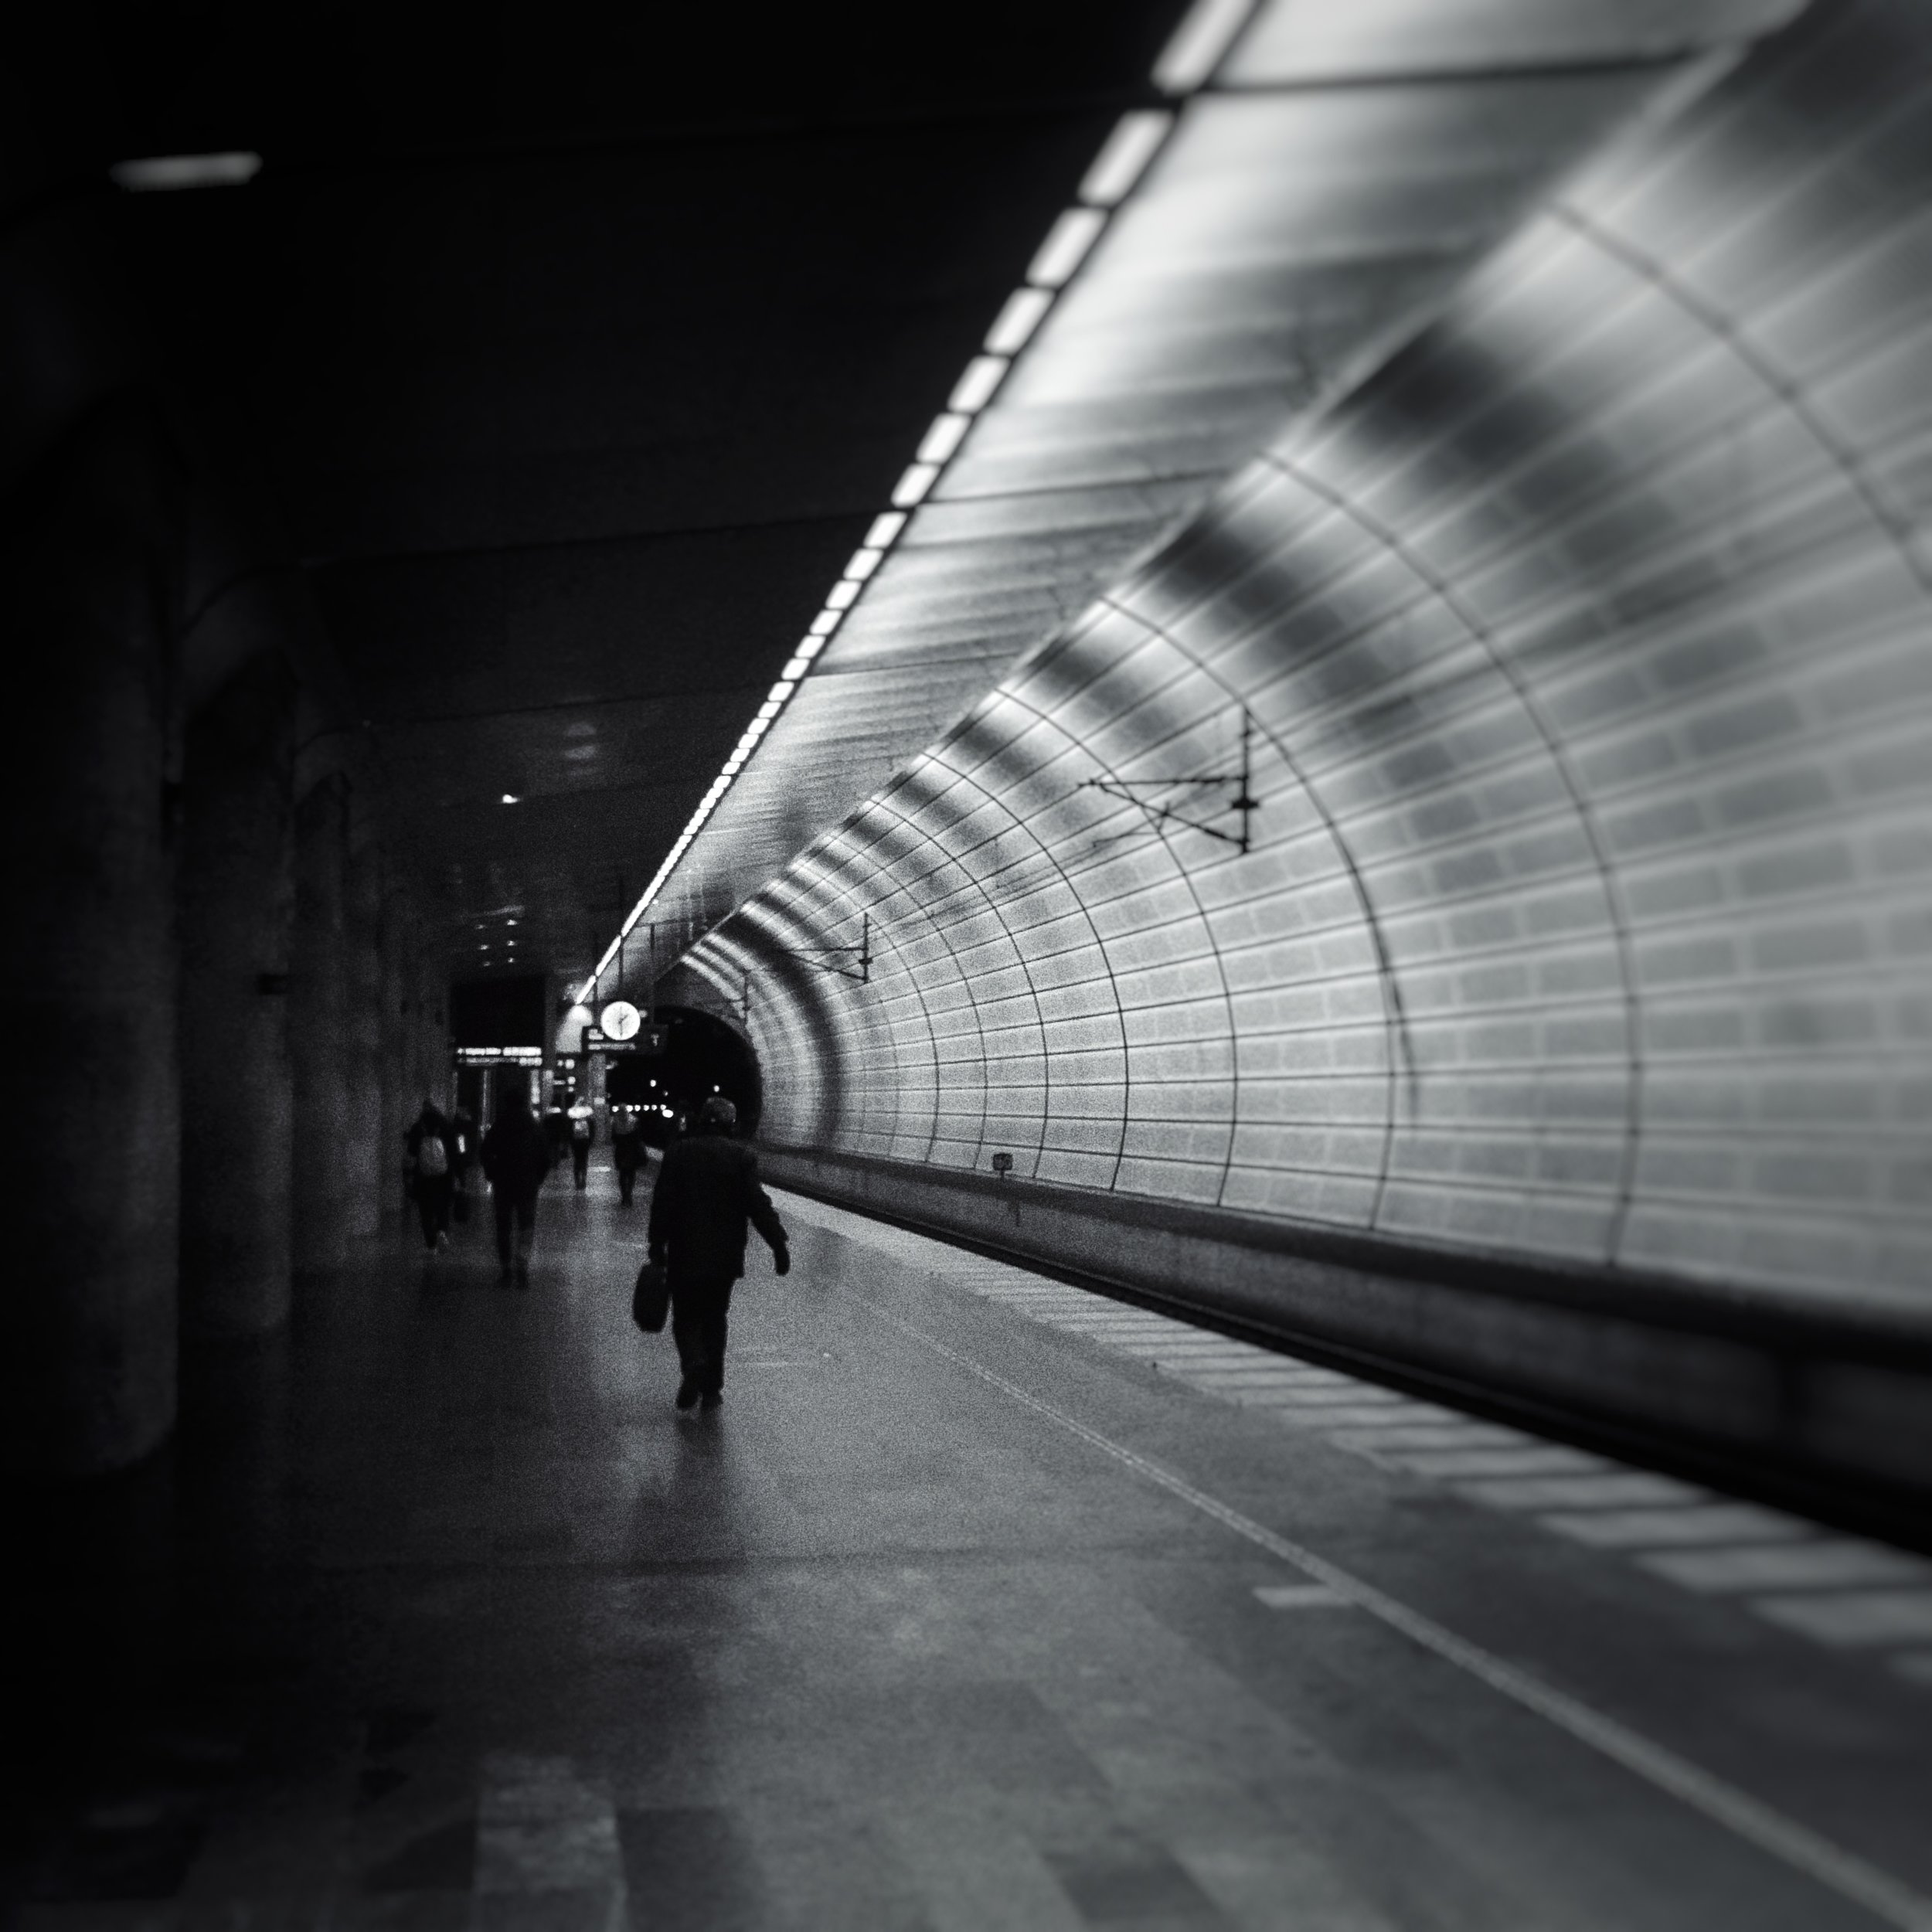 November 9 - Day 314: Into A Dark Tunnel